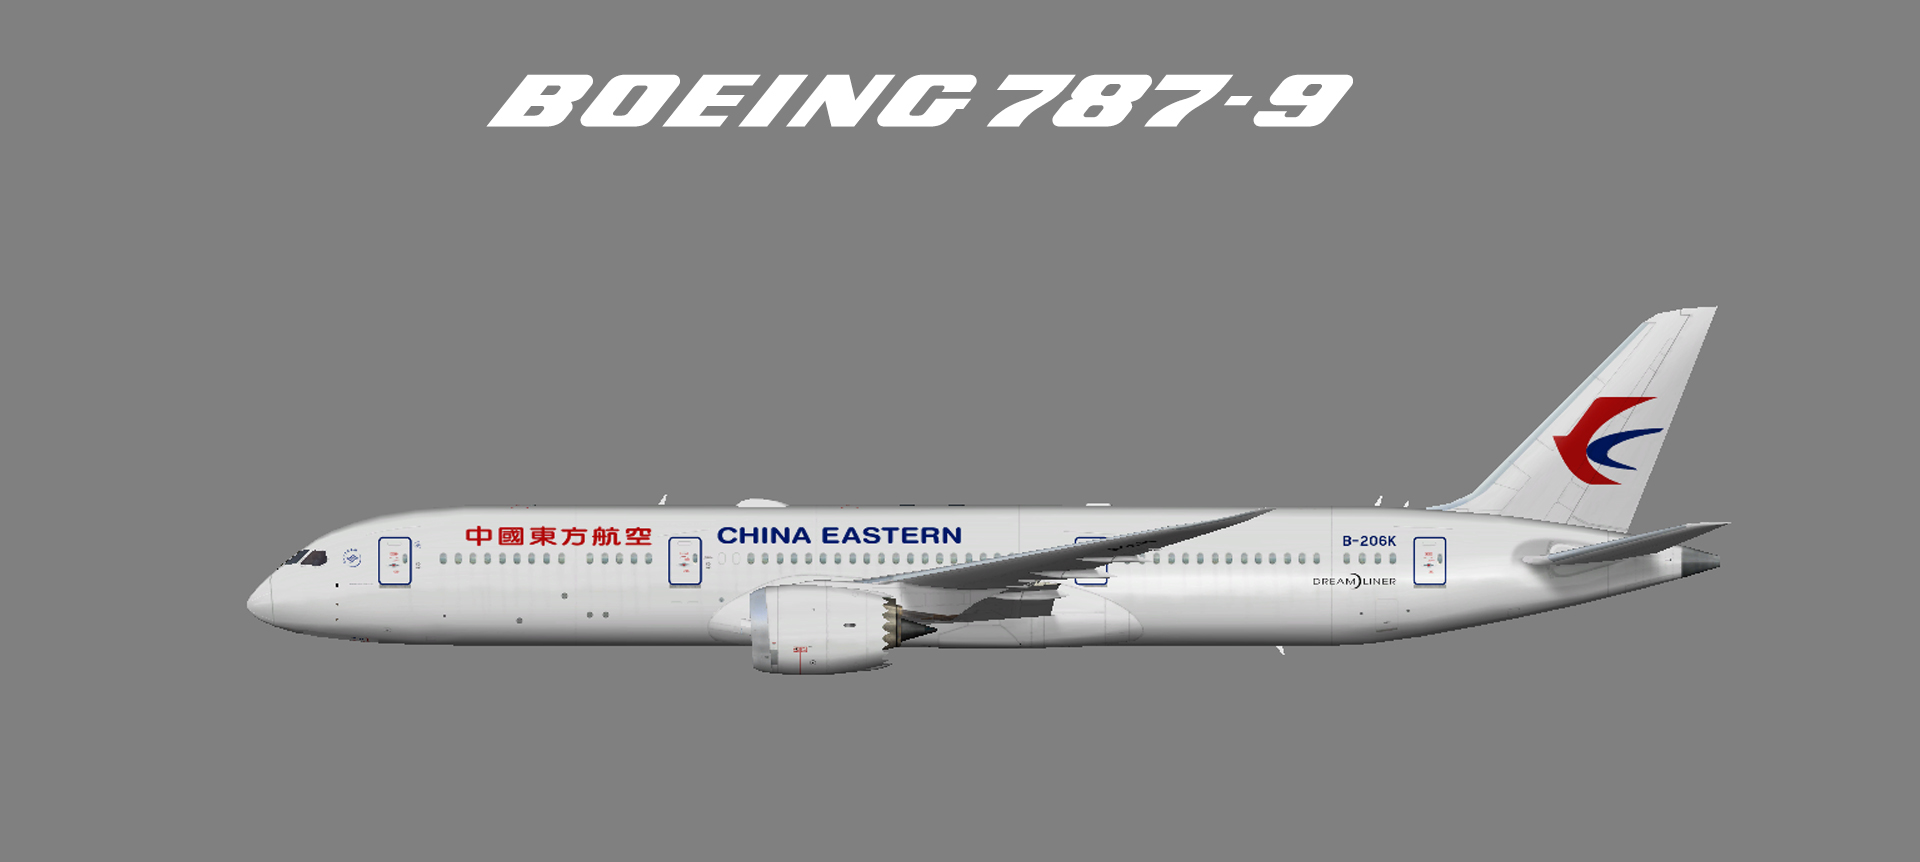 China Eastern Boeing 787-9